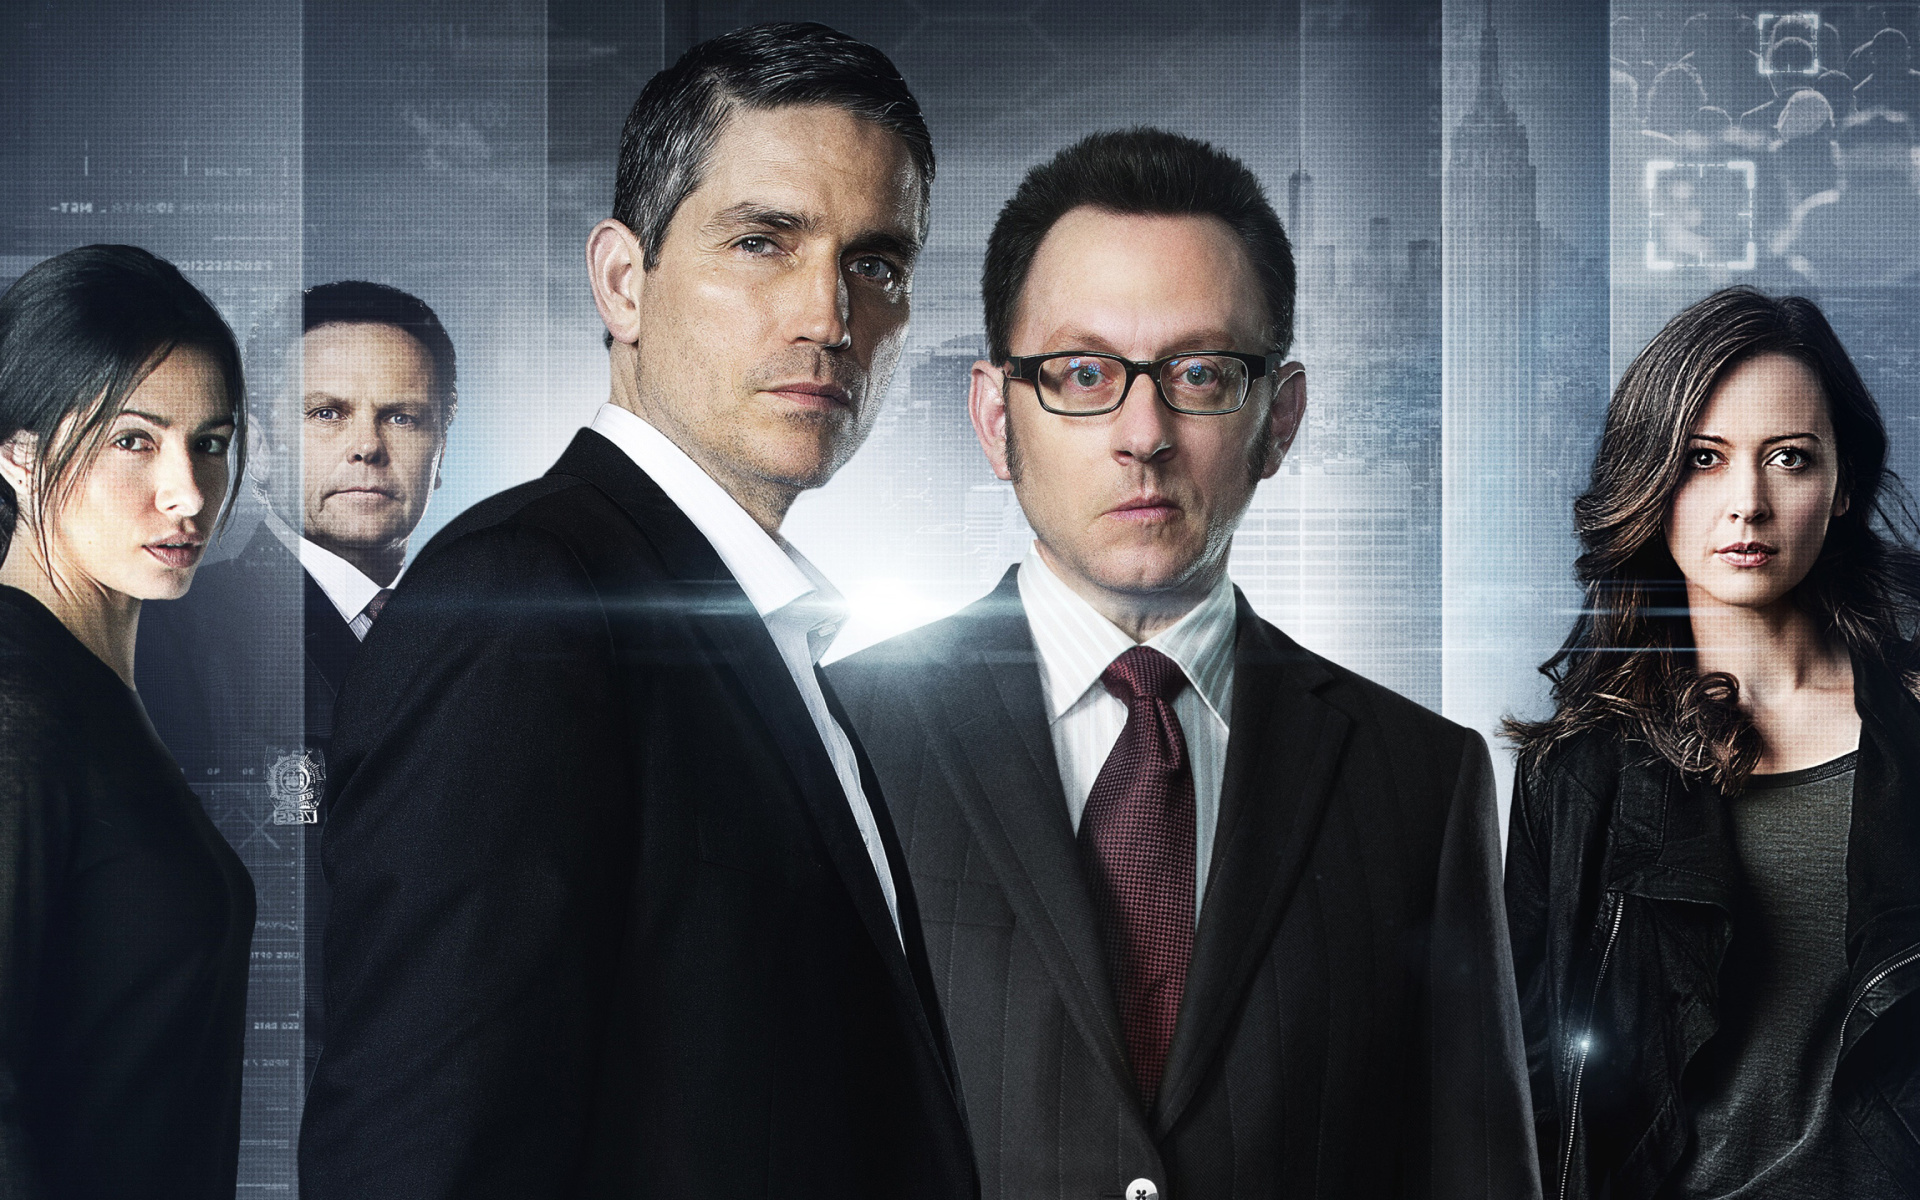 person of interest wallpapers 1920x1080 - photo #33